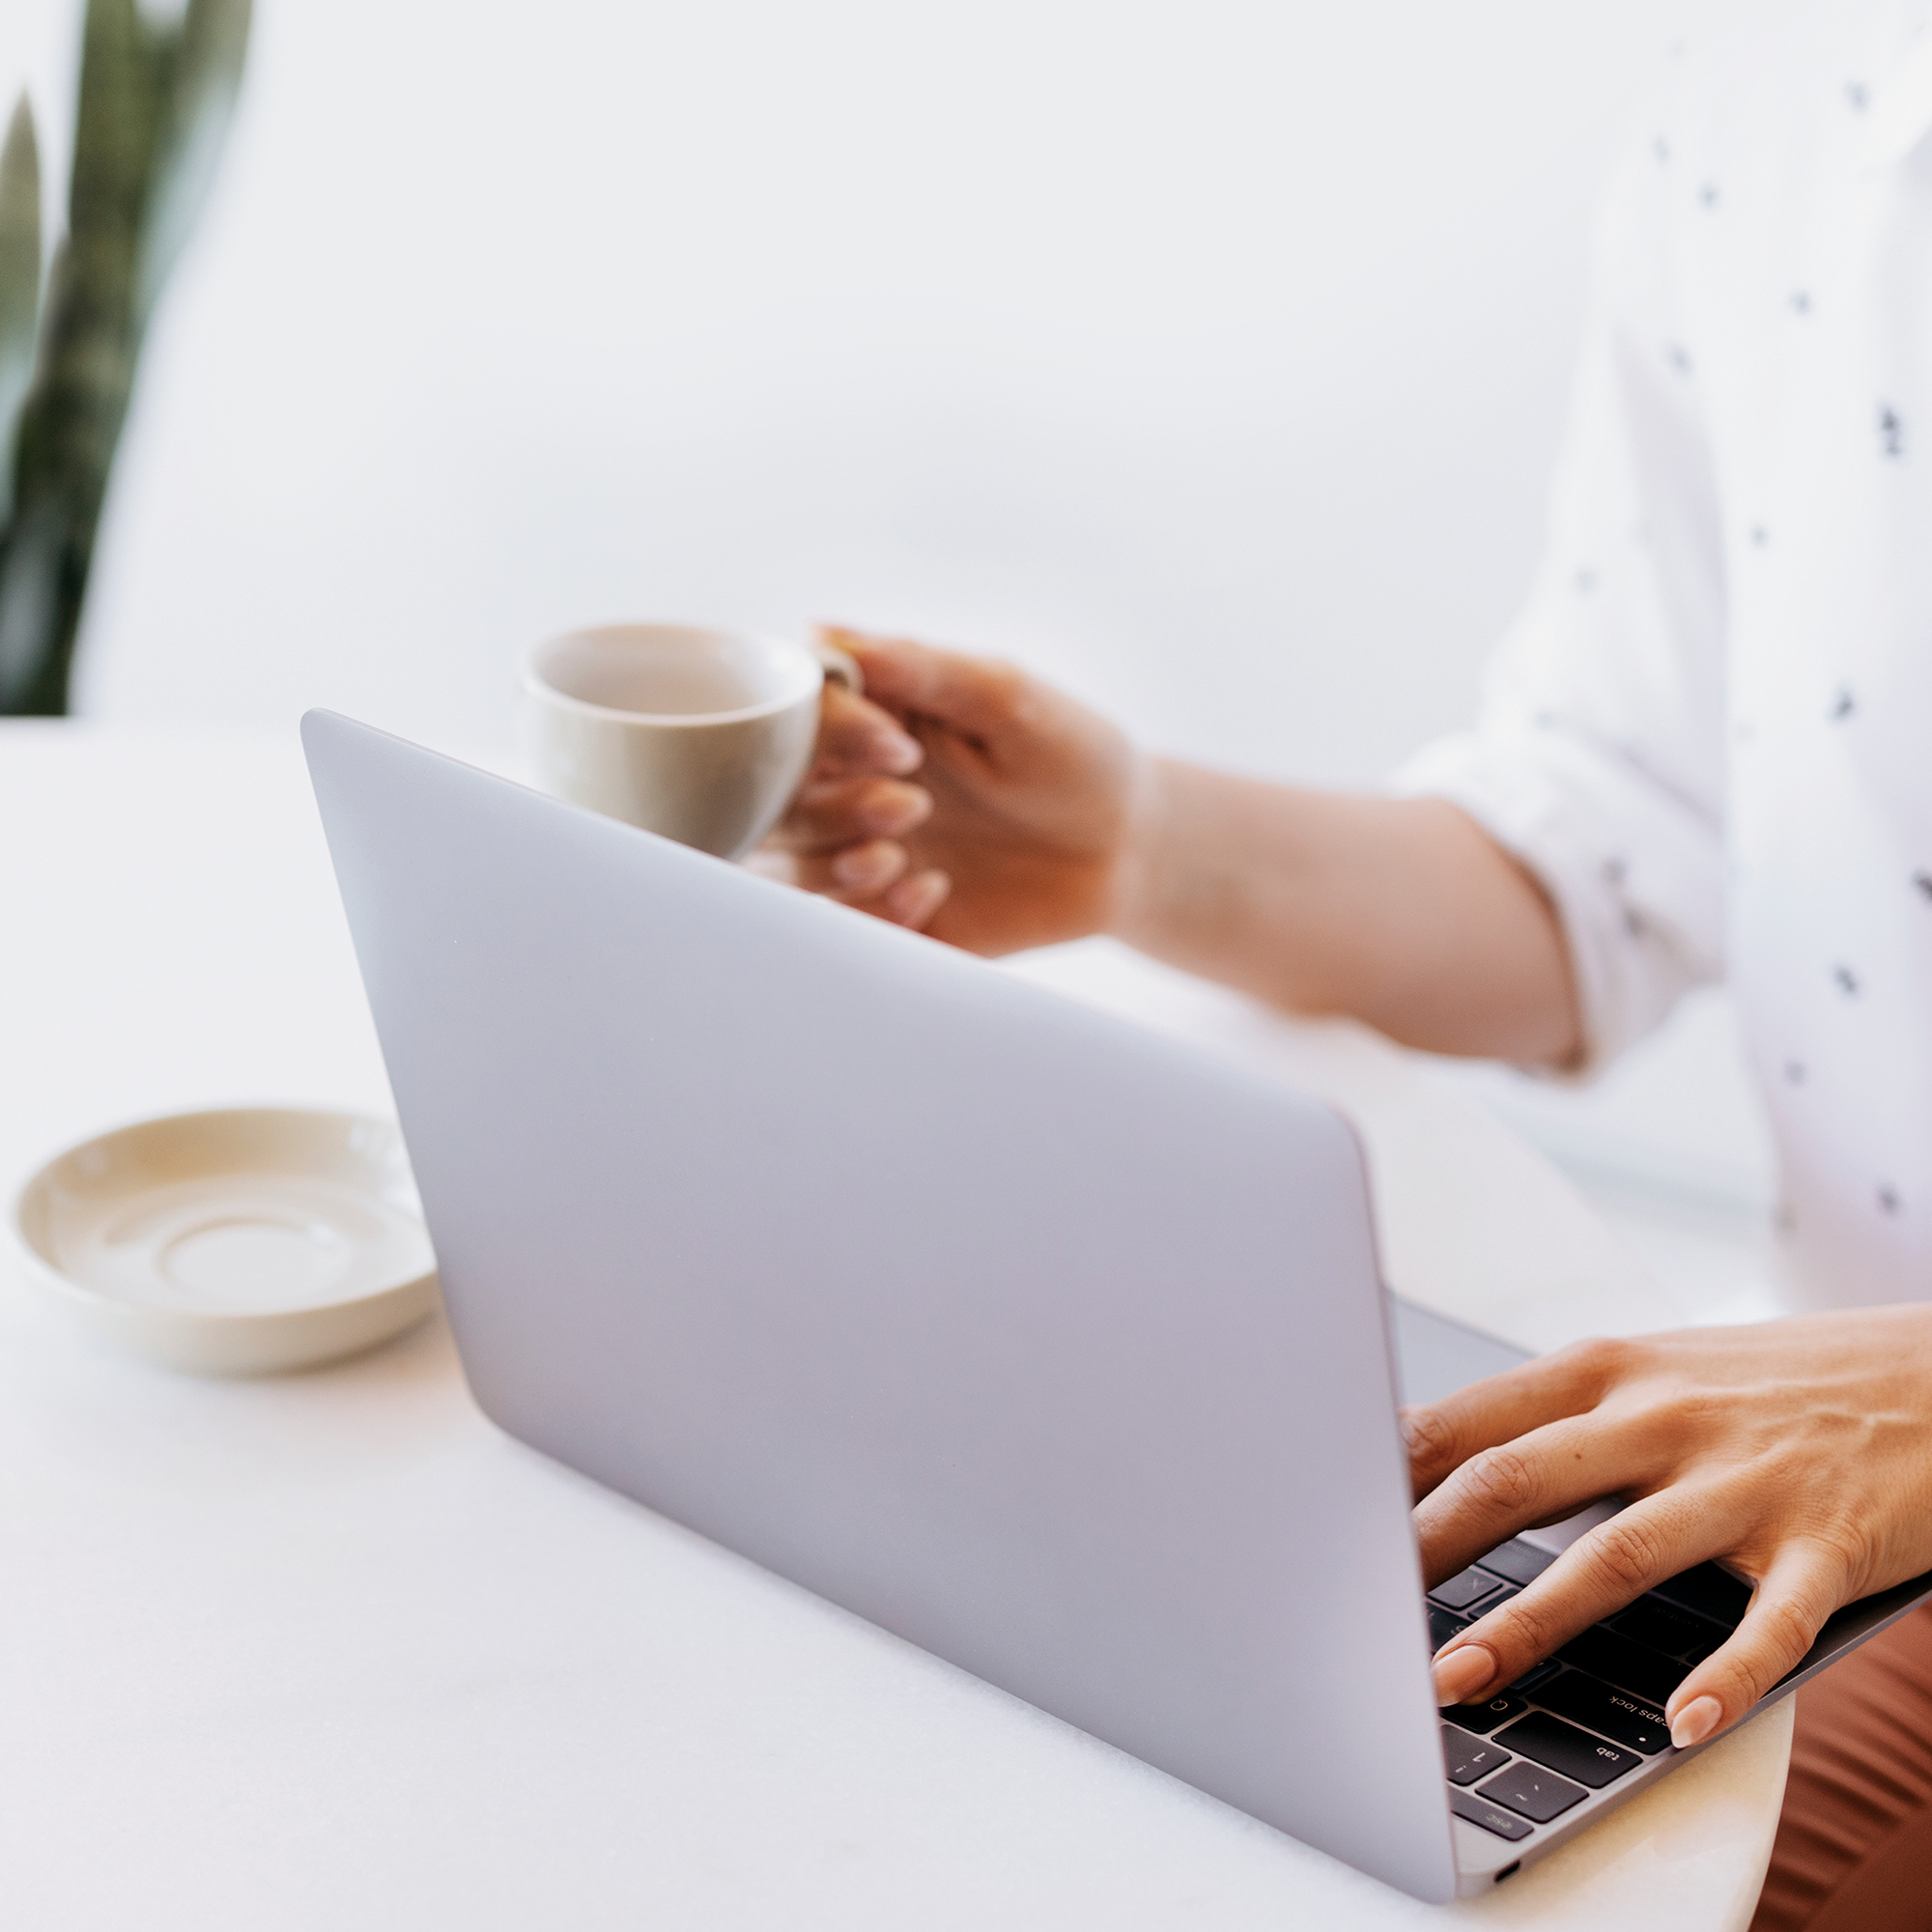 A person on their laptop and drinking coffee